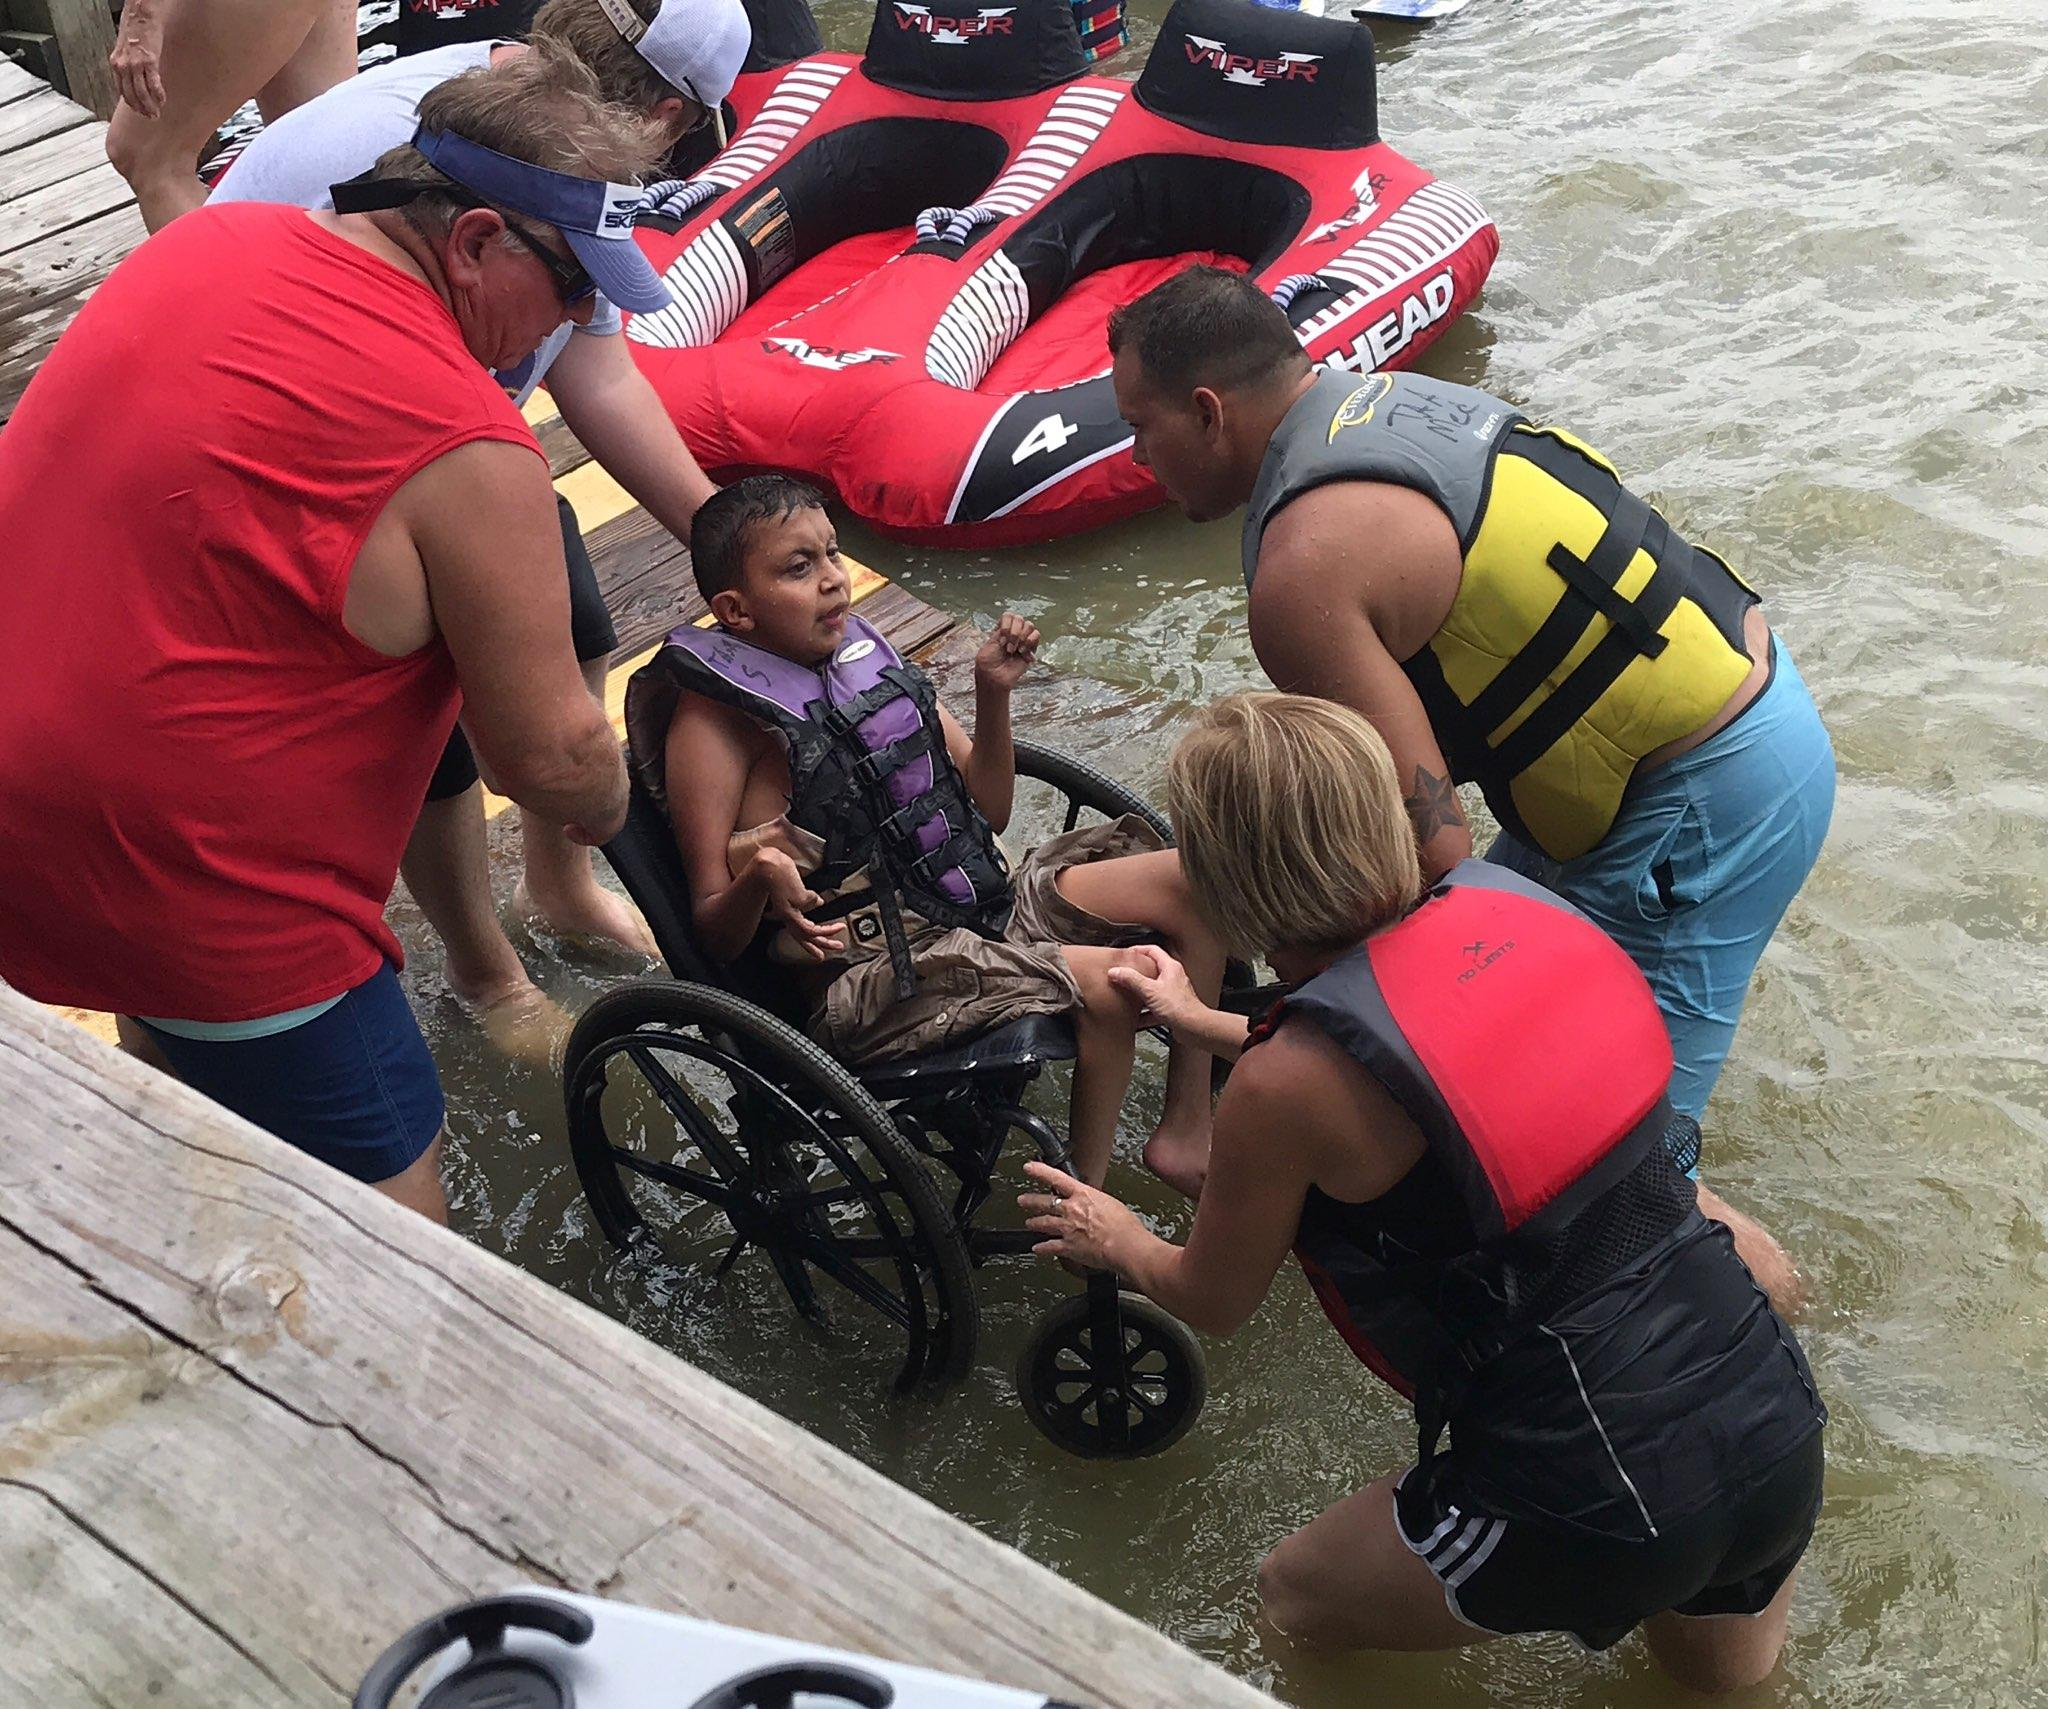 A little boy in a wheelchair is being helped into the water on a ramp by three TAA volunteers.